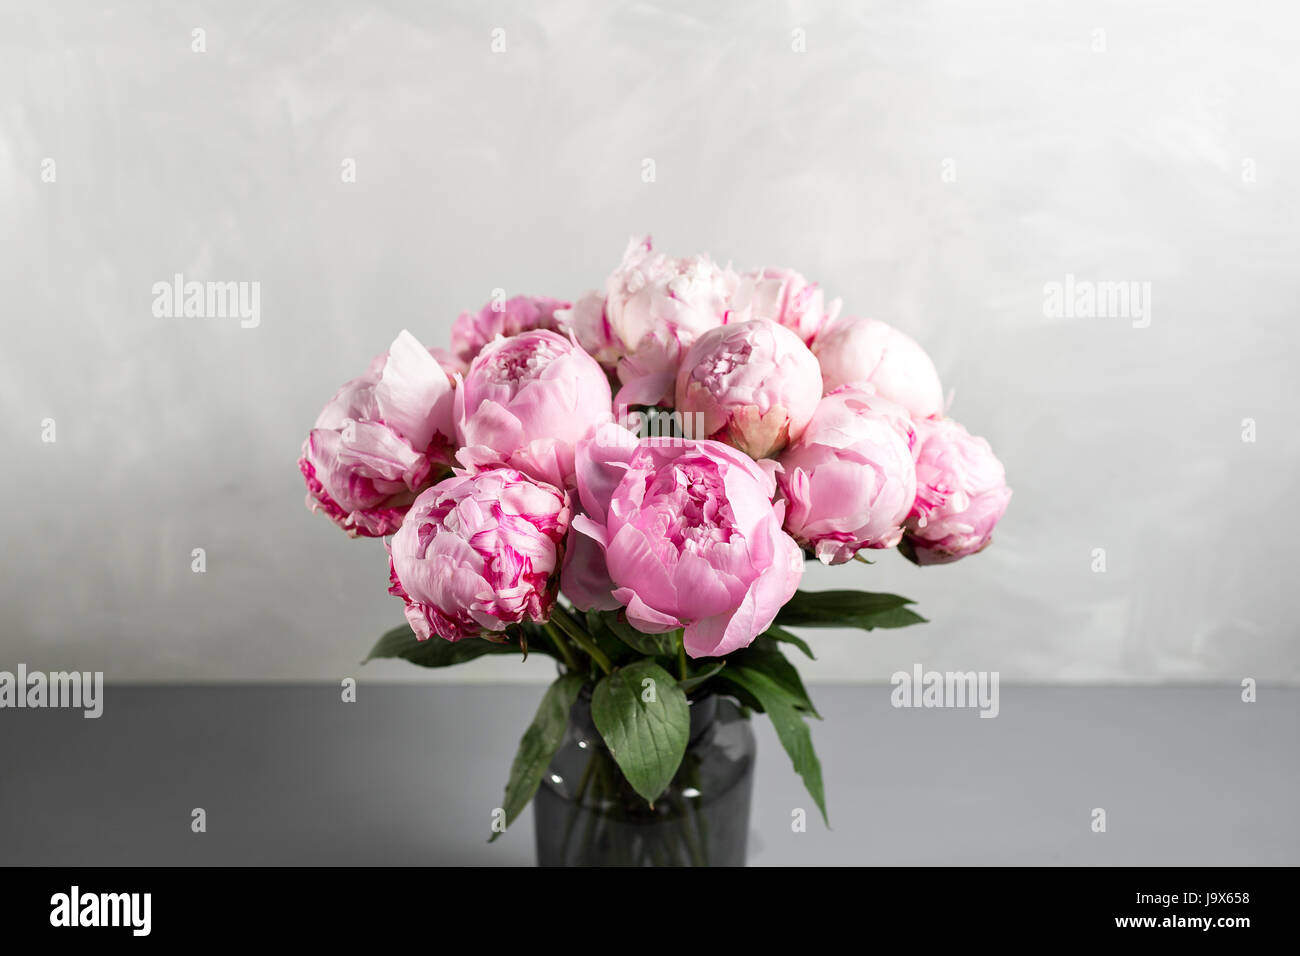 Pink peony flower on a gray background.copy space Stock Photo